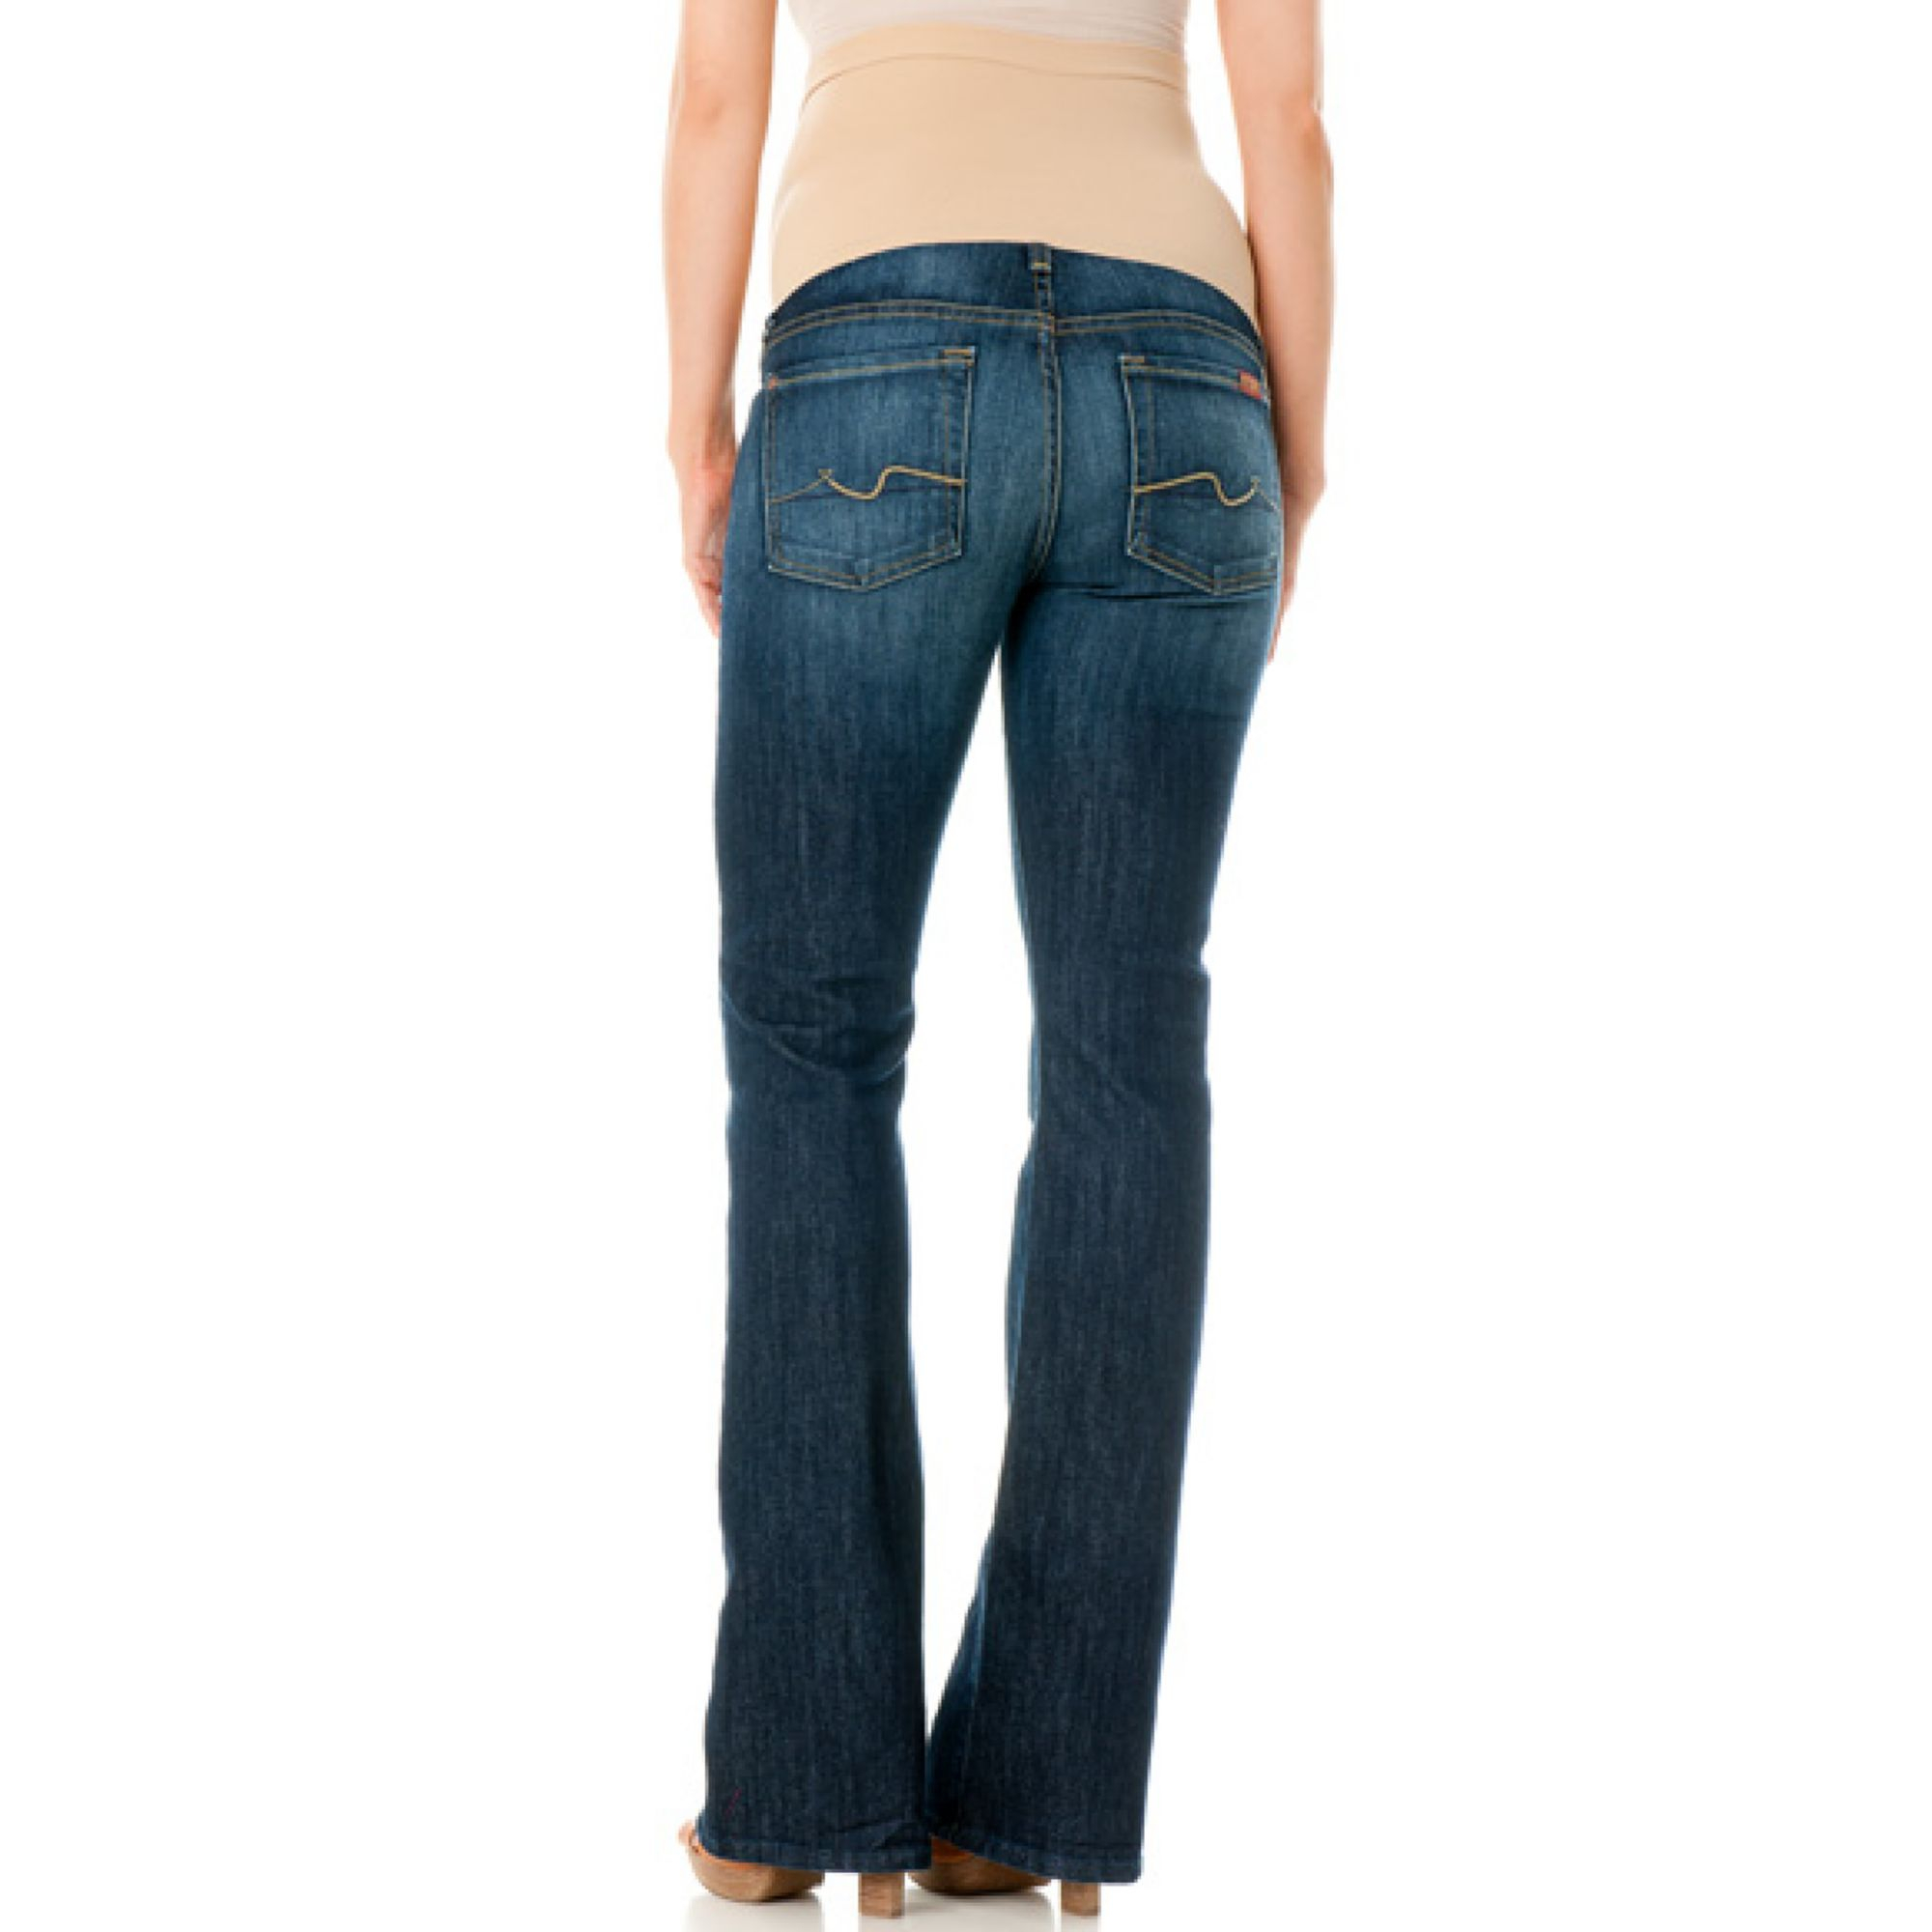 d8478a675dd4e 7 For All Mankind A Petite Bootcut Maternity Jeans New York Dark Wash in  Blue - Lyst